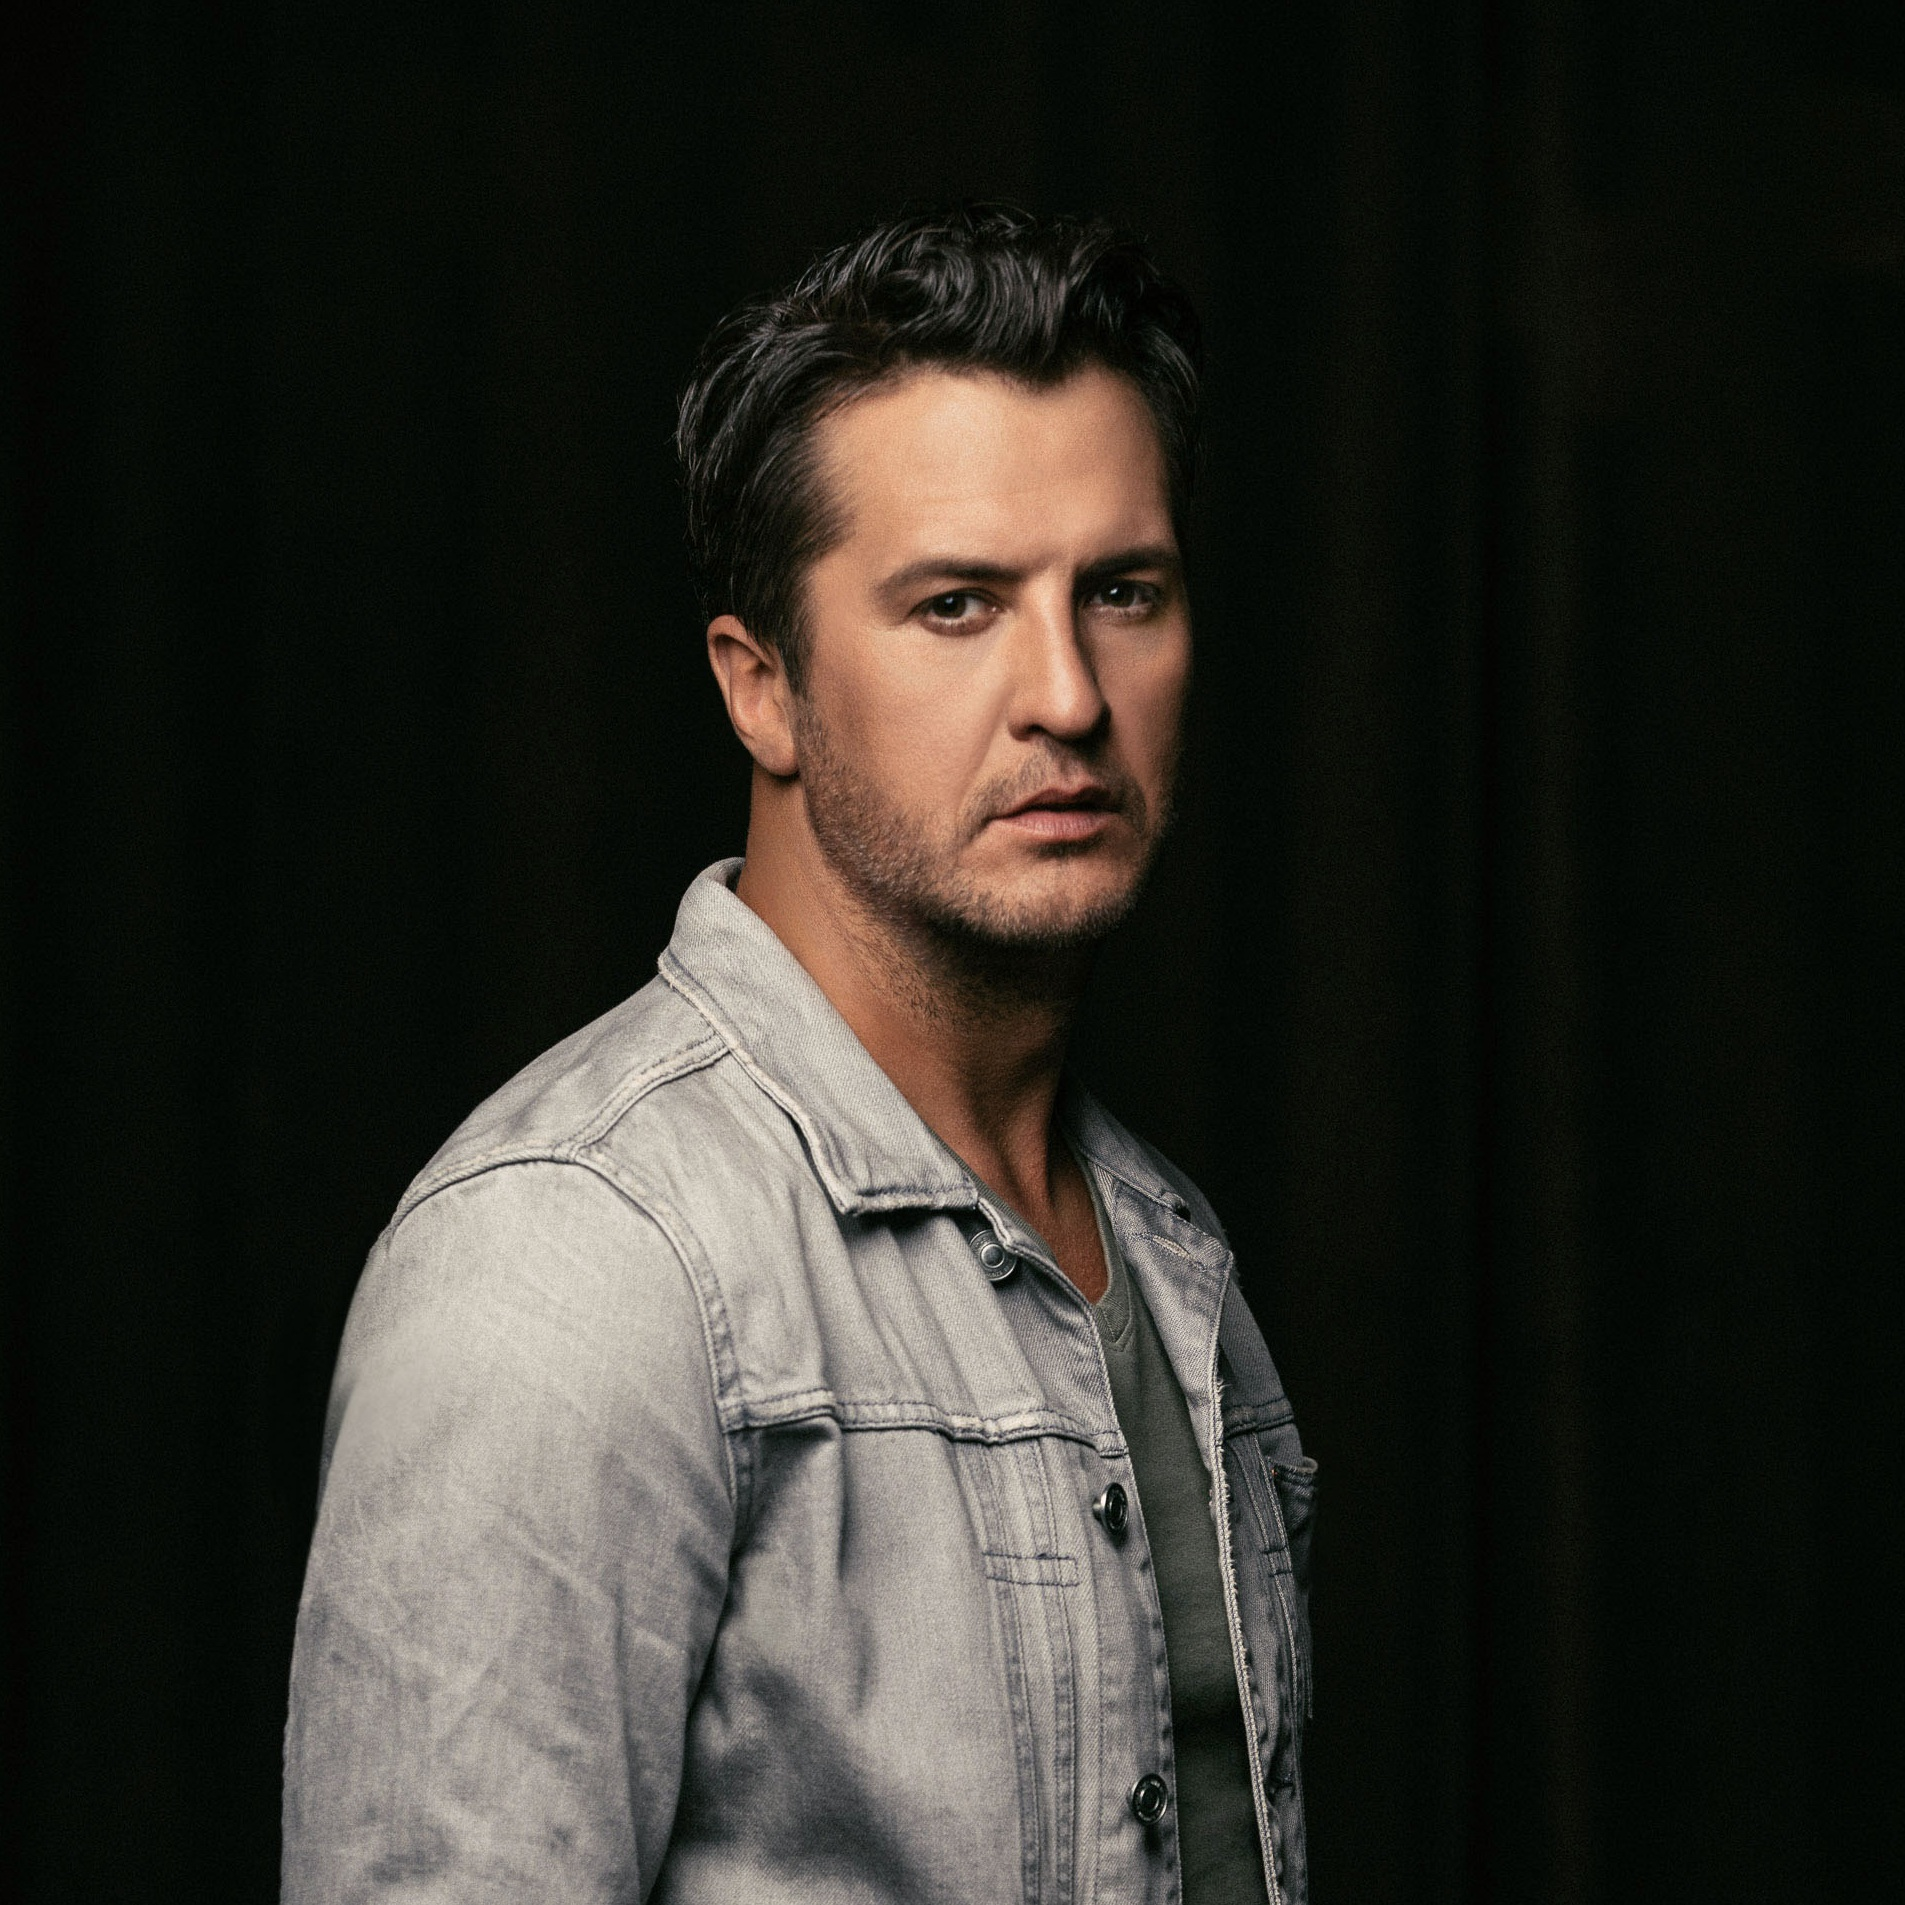 LUKE BRYAN DEBUTS NEW SINGLE ON AMERICAN IDOL FINALE AND PREPS THE NEXT LEG OF HIS AWARD-WINNING TREK, WHAT MAKES YOU COUNTRY TOUR.